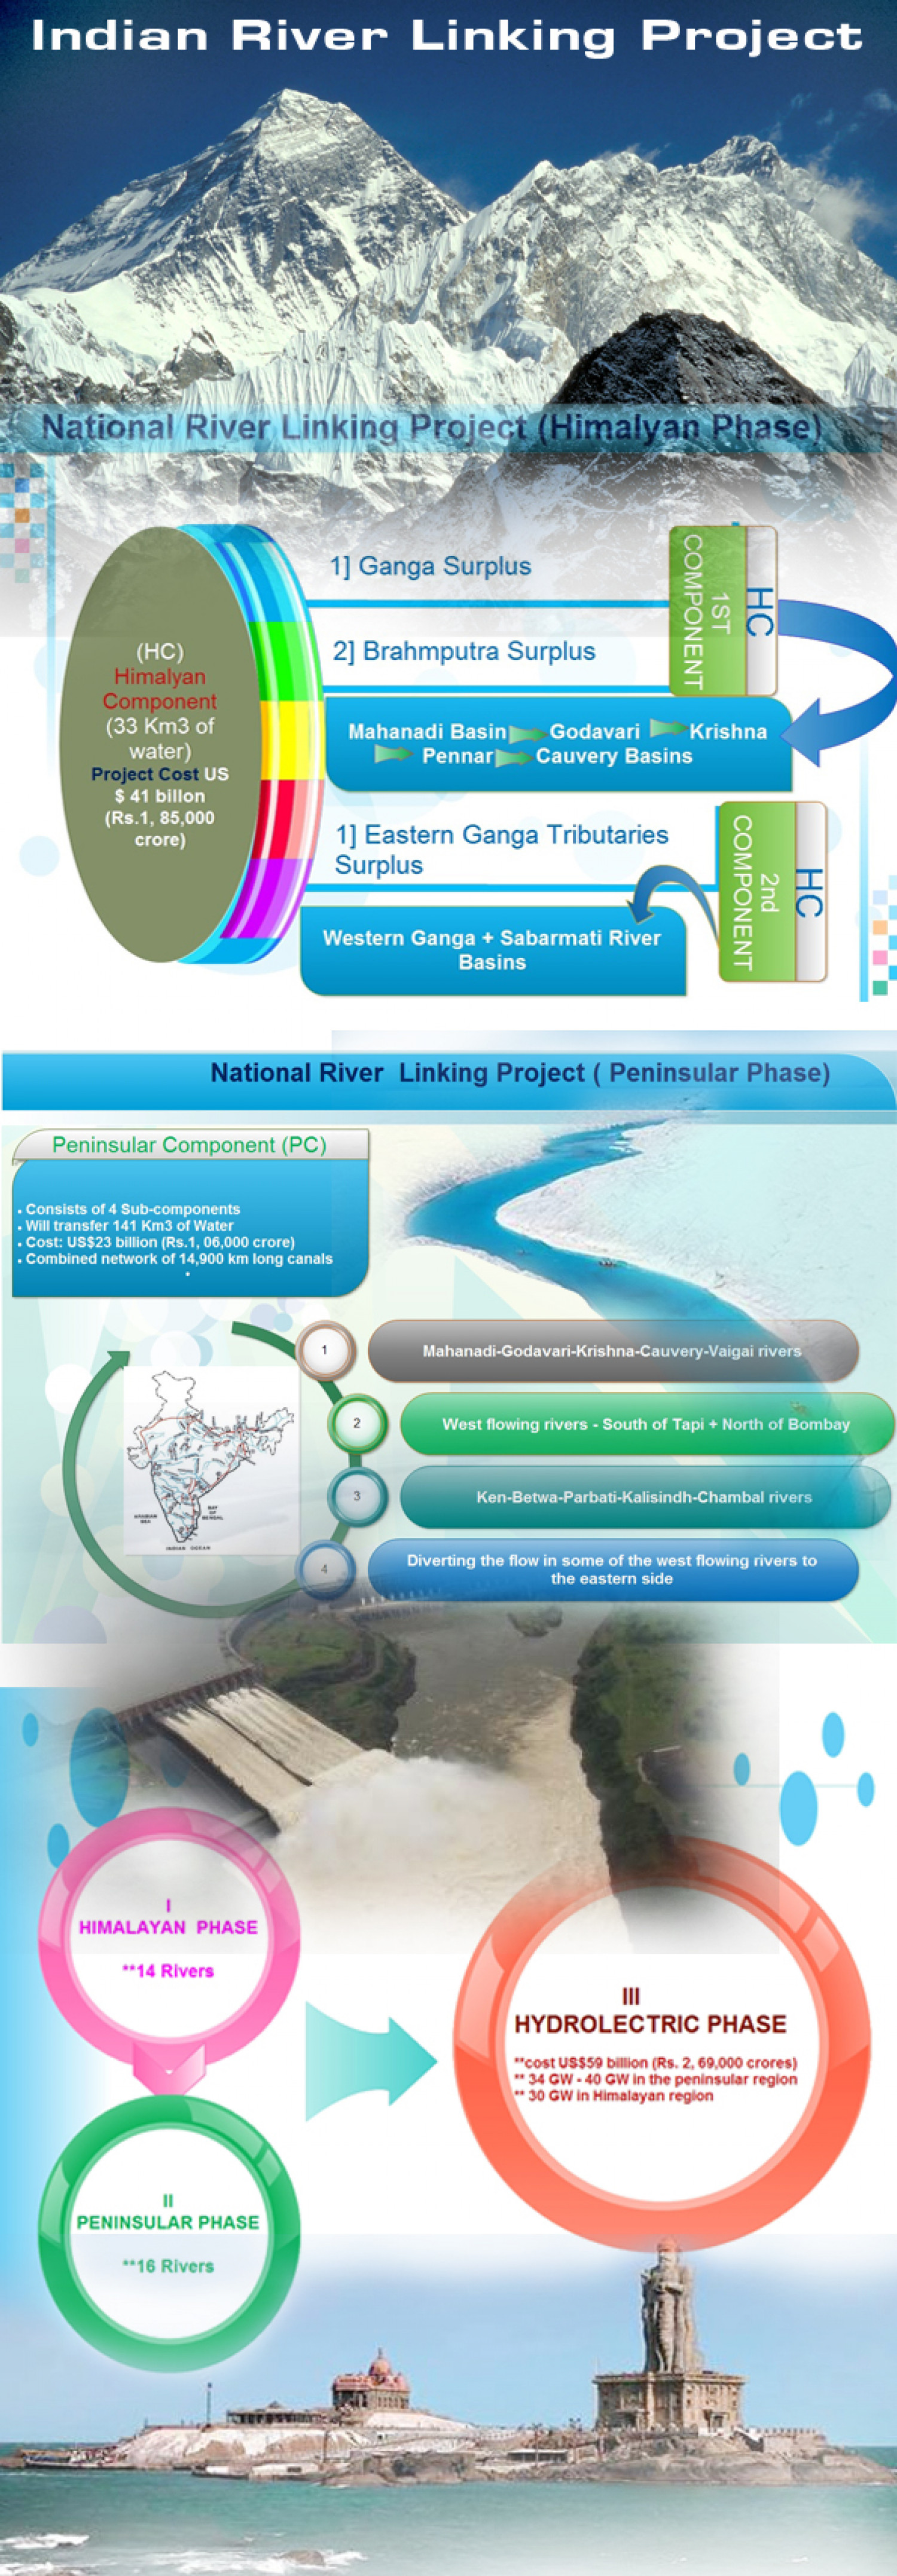 National River Linking Project Infographic